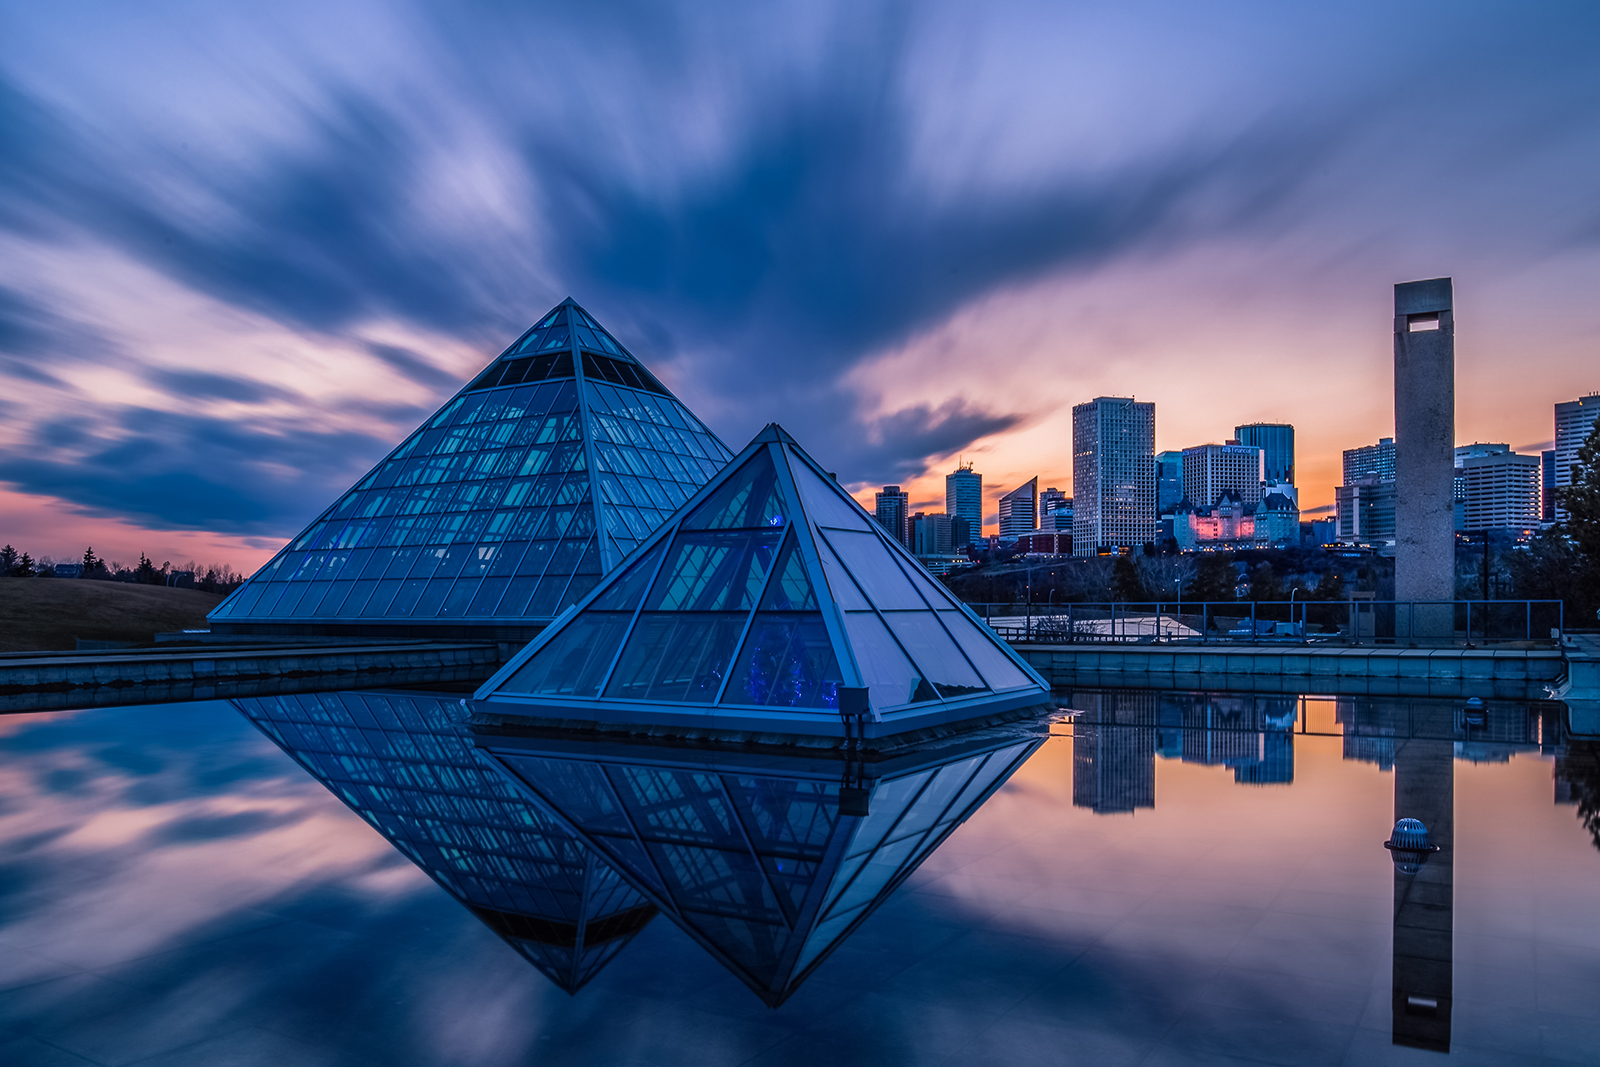 Edmonton's Muttart Conservatory is reflected in a puddle at sunset after a day of rain. Photo by Ron Huang